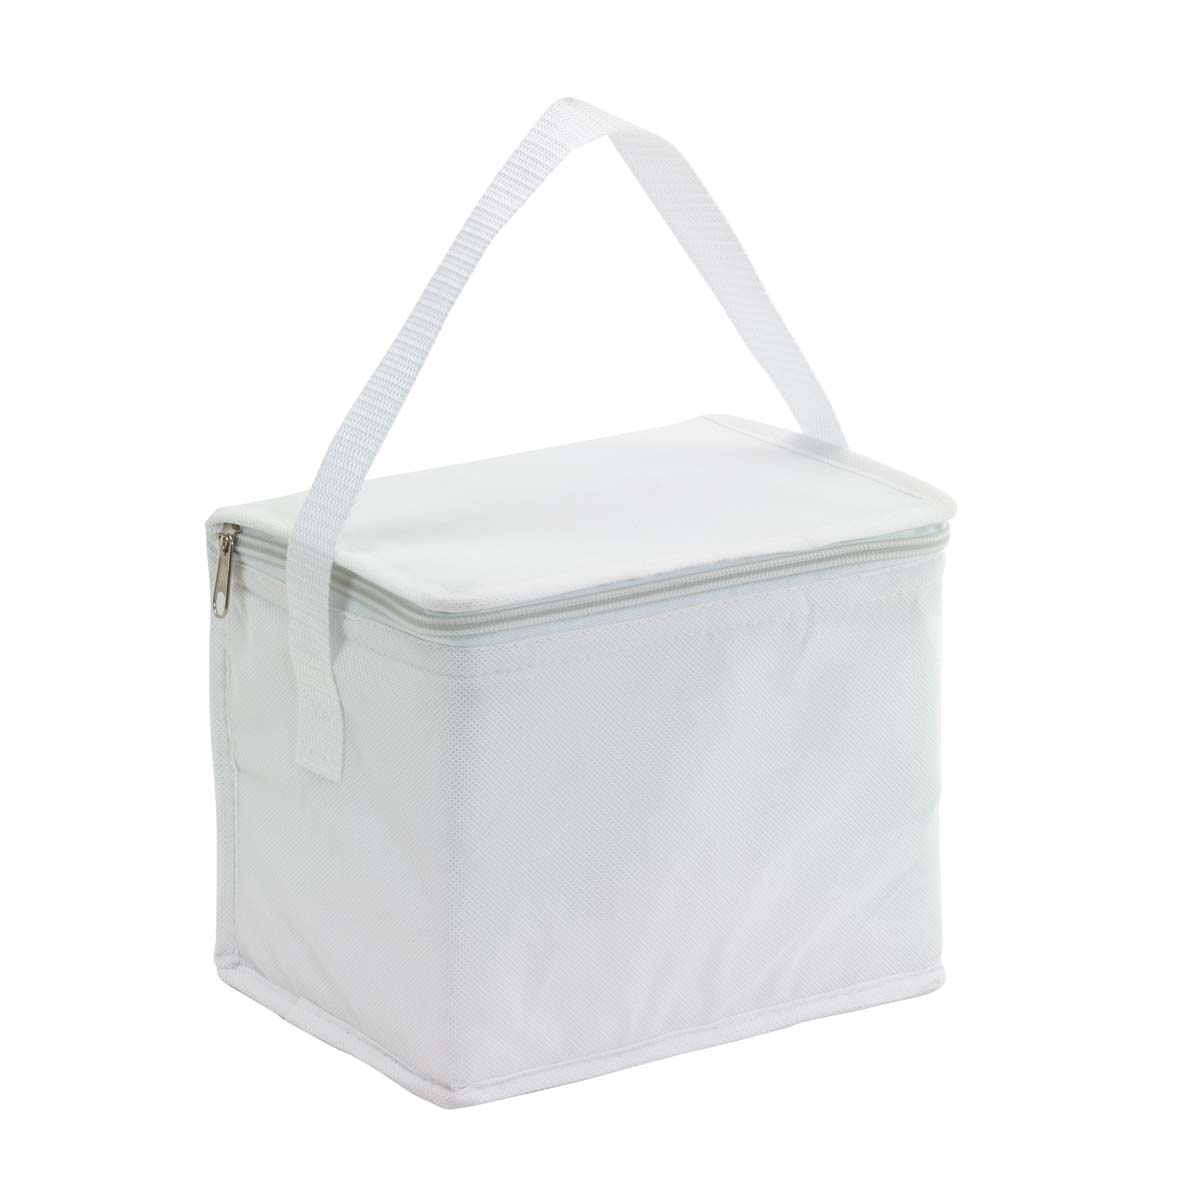 Cooler bag 'Celsius': with insulated zip pocket and carrying handle. - White ins-0801136